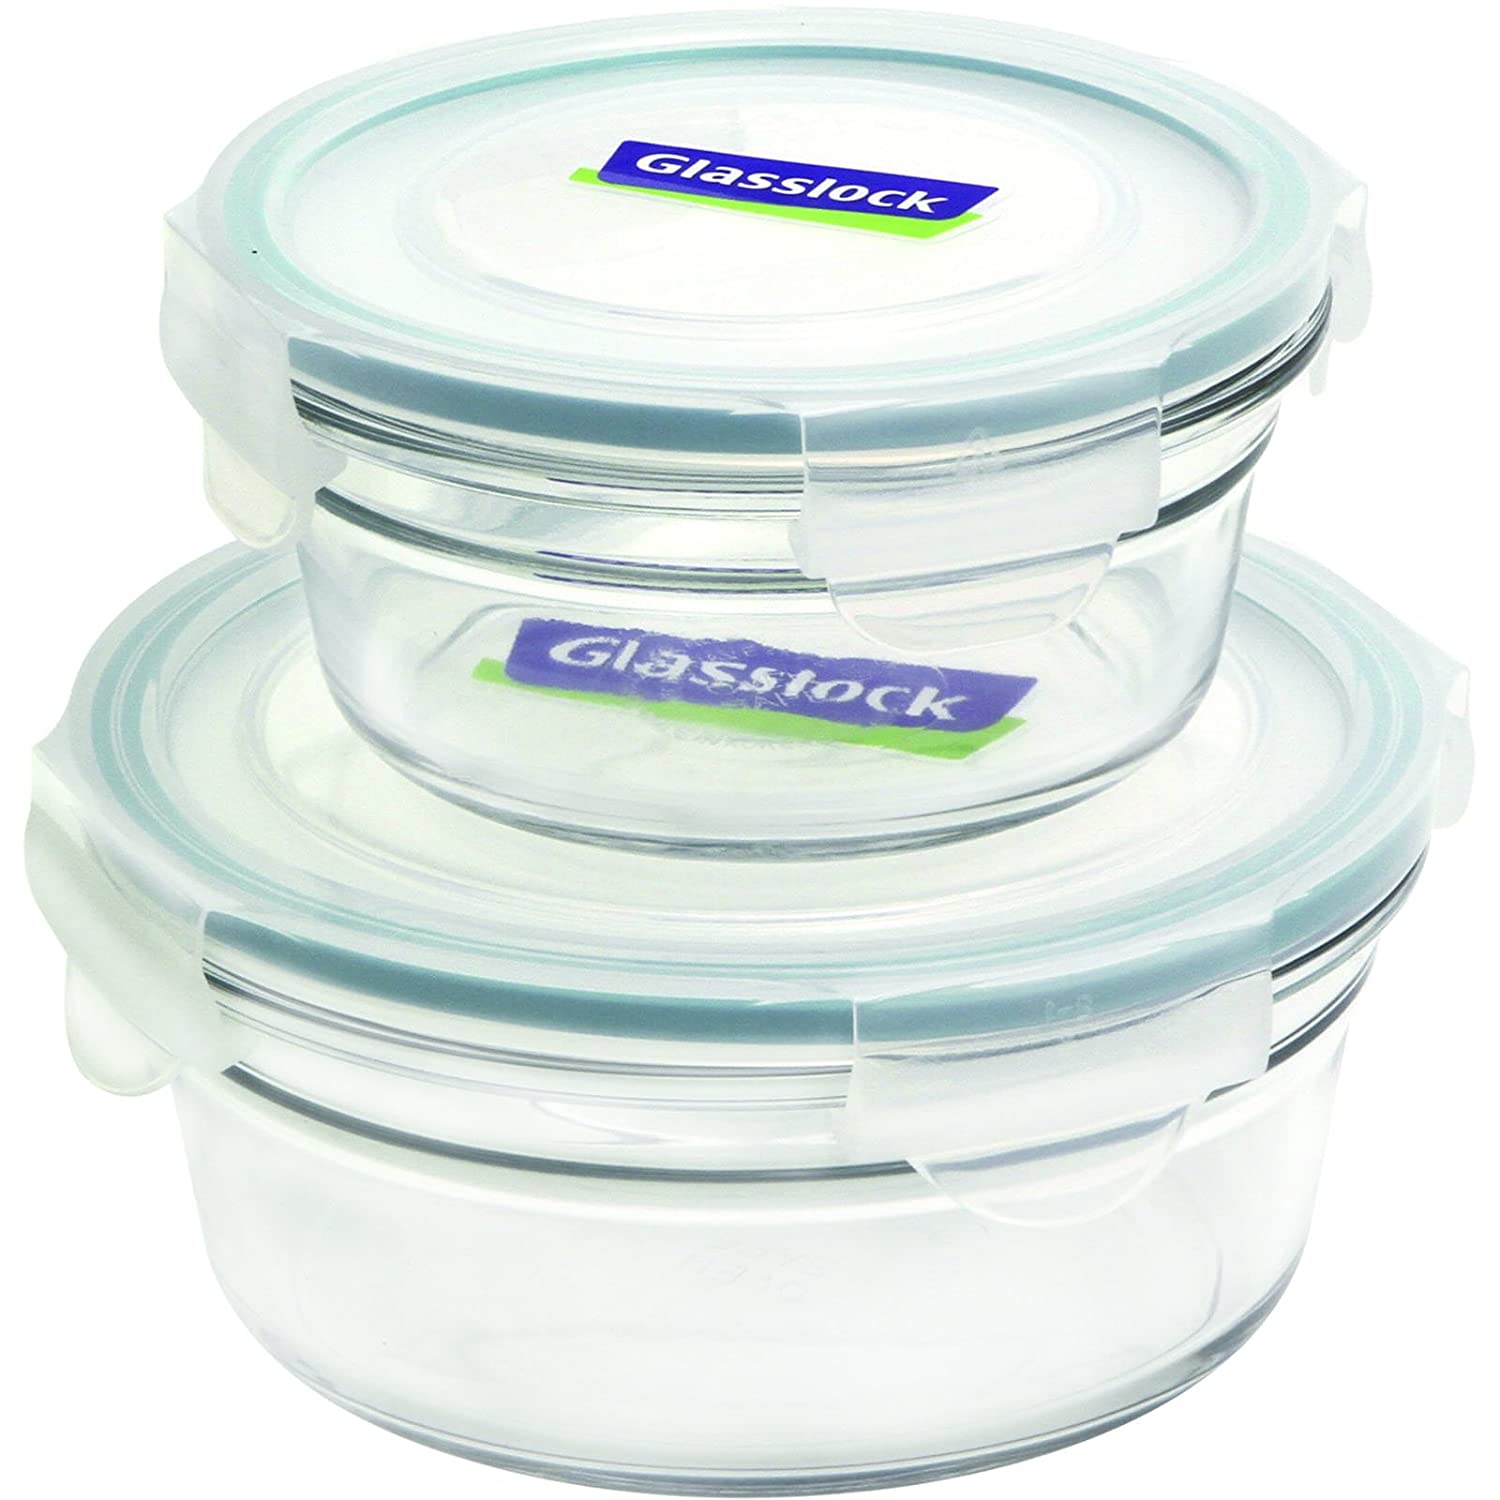 Glasslock 4-Piece Round Oven Safe Containers Set